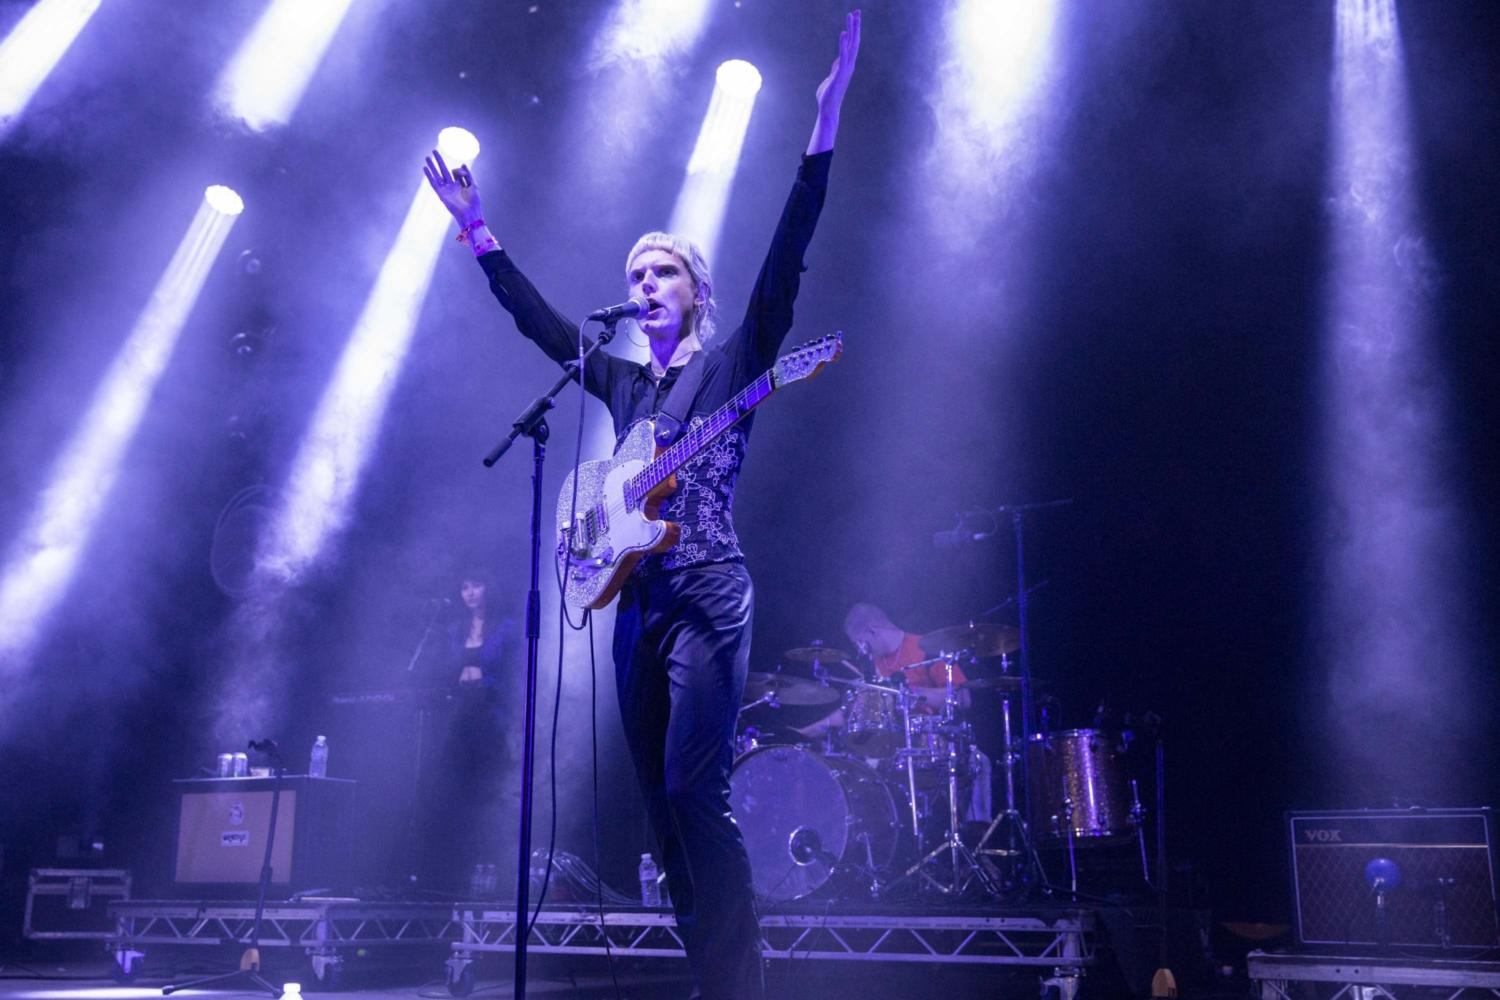 Sundara Karma, Metronomy, Dream Wife and more for Live At Leeds 2019